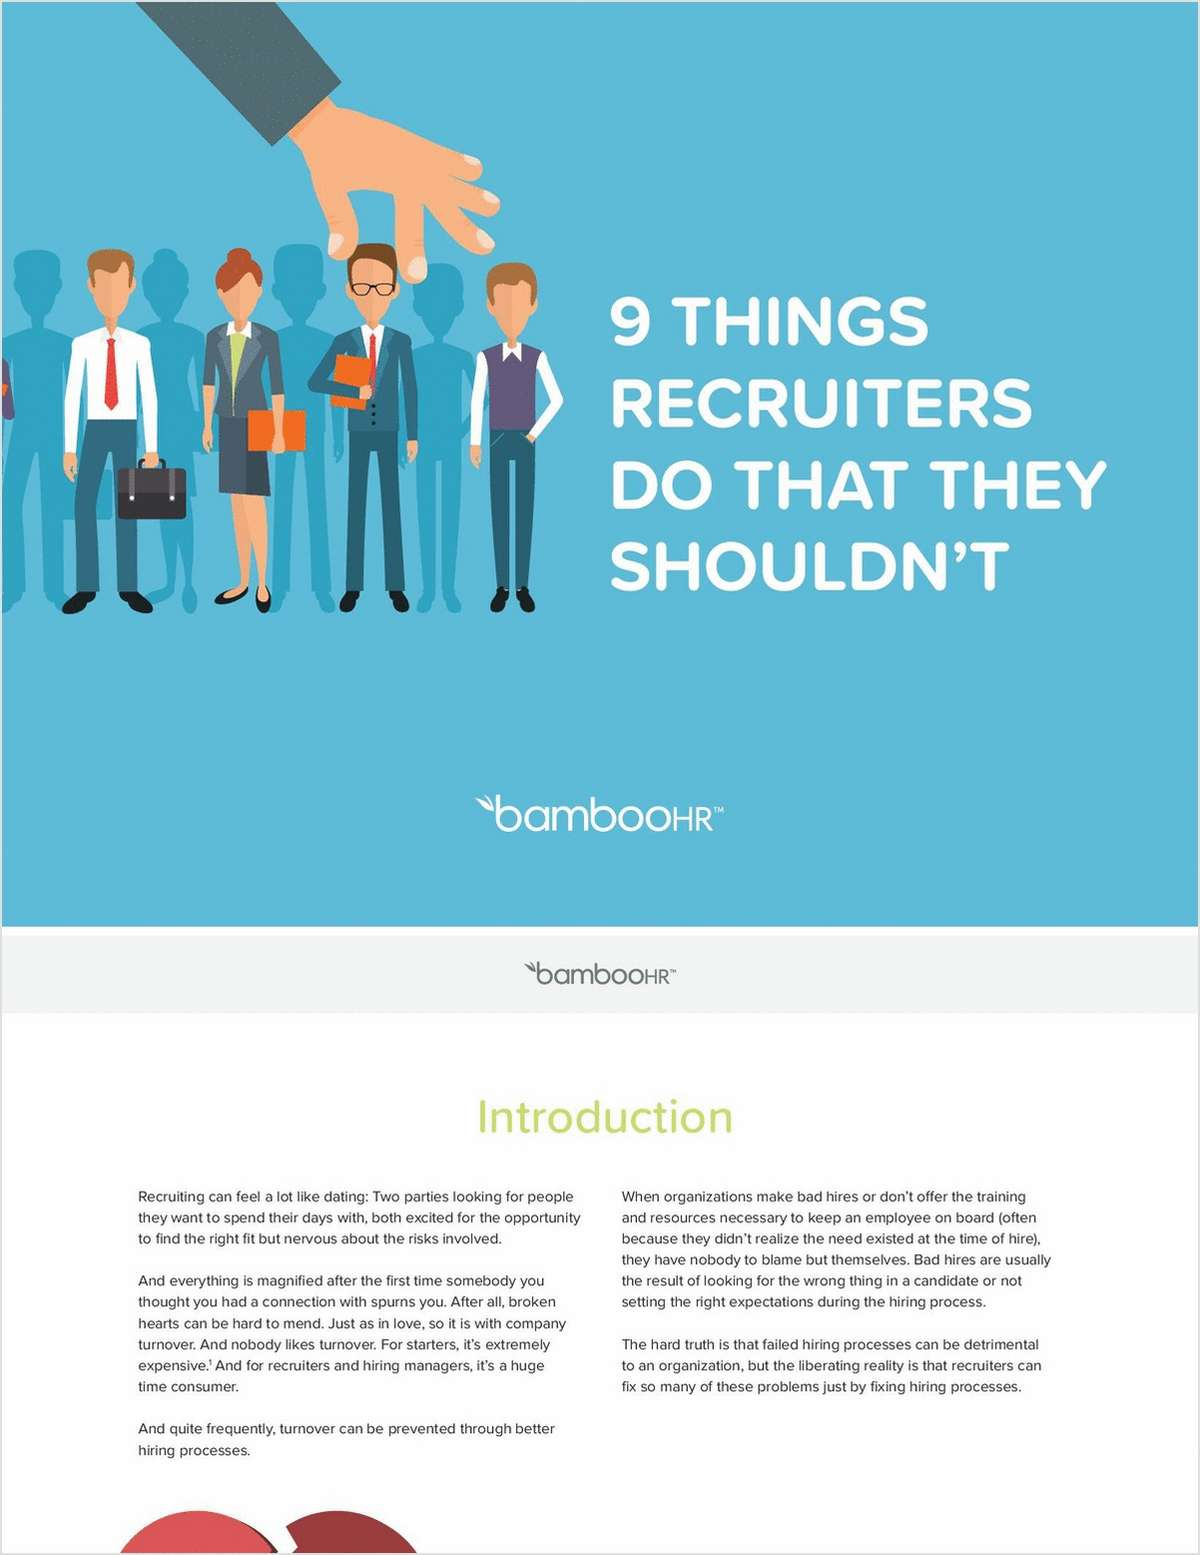 9 Things Recruiters Do That They Shouldn't